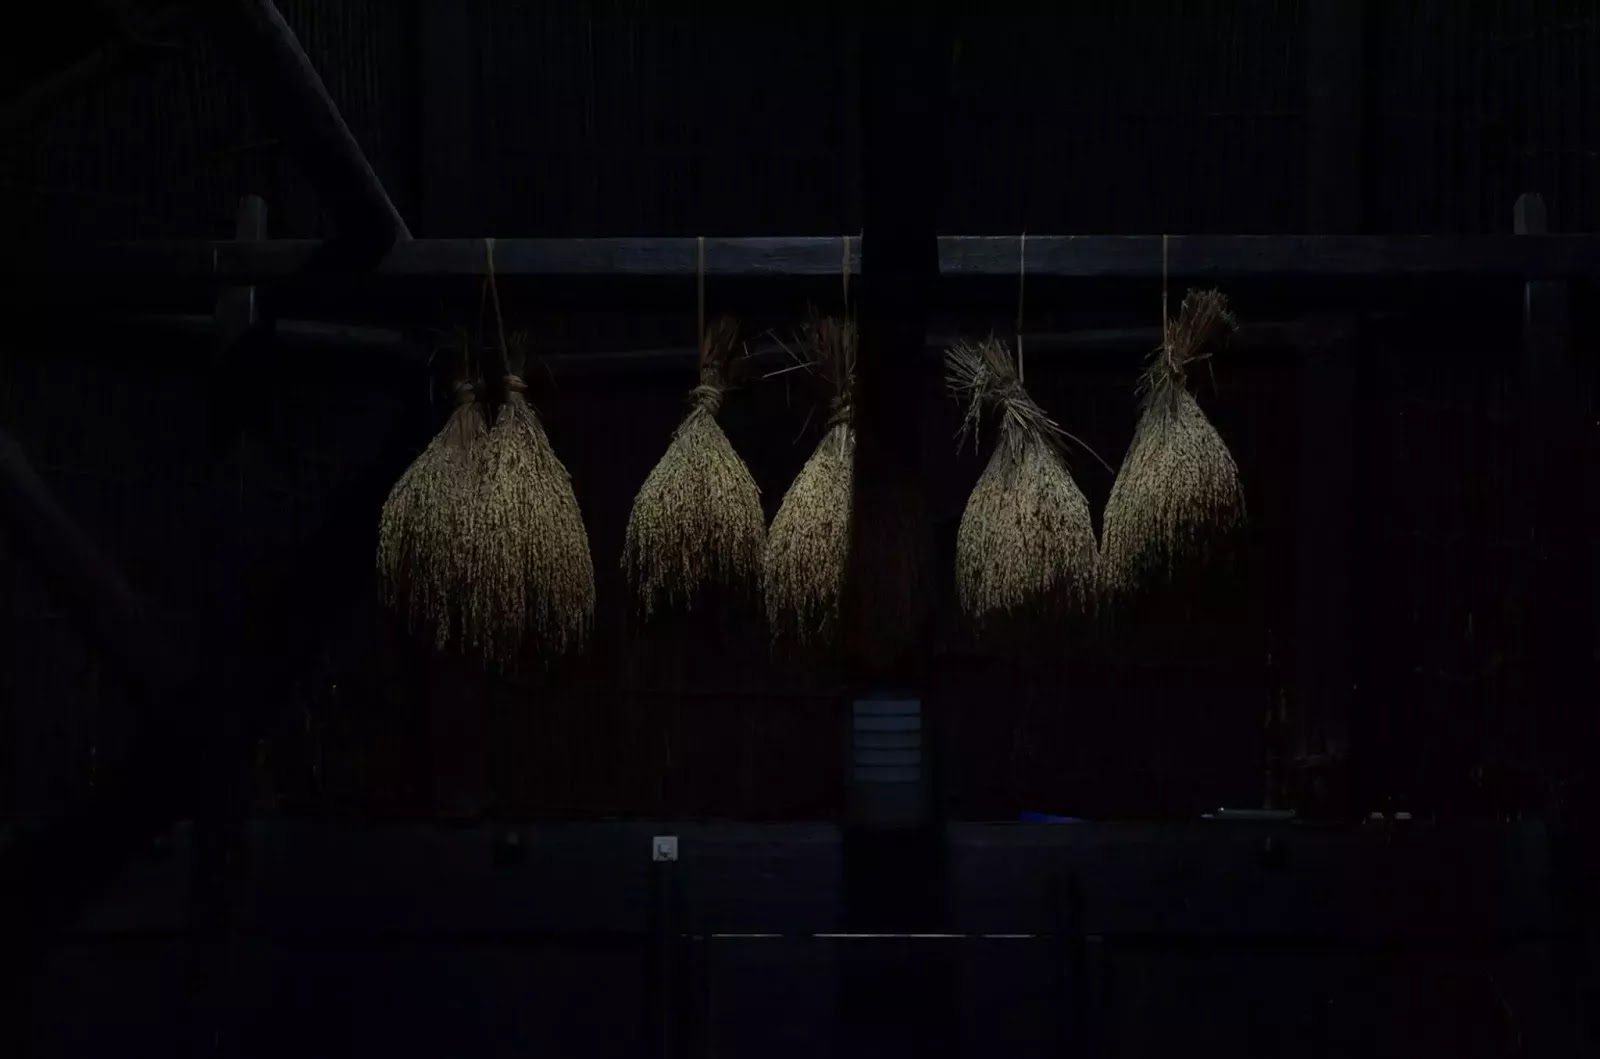 International Arts Festival 8th Tam-awan Baguio City Philippines Rice Stalks Inside Ifugao Hut